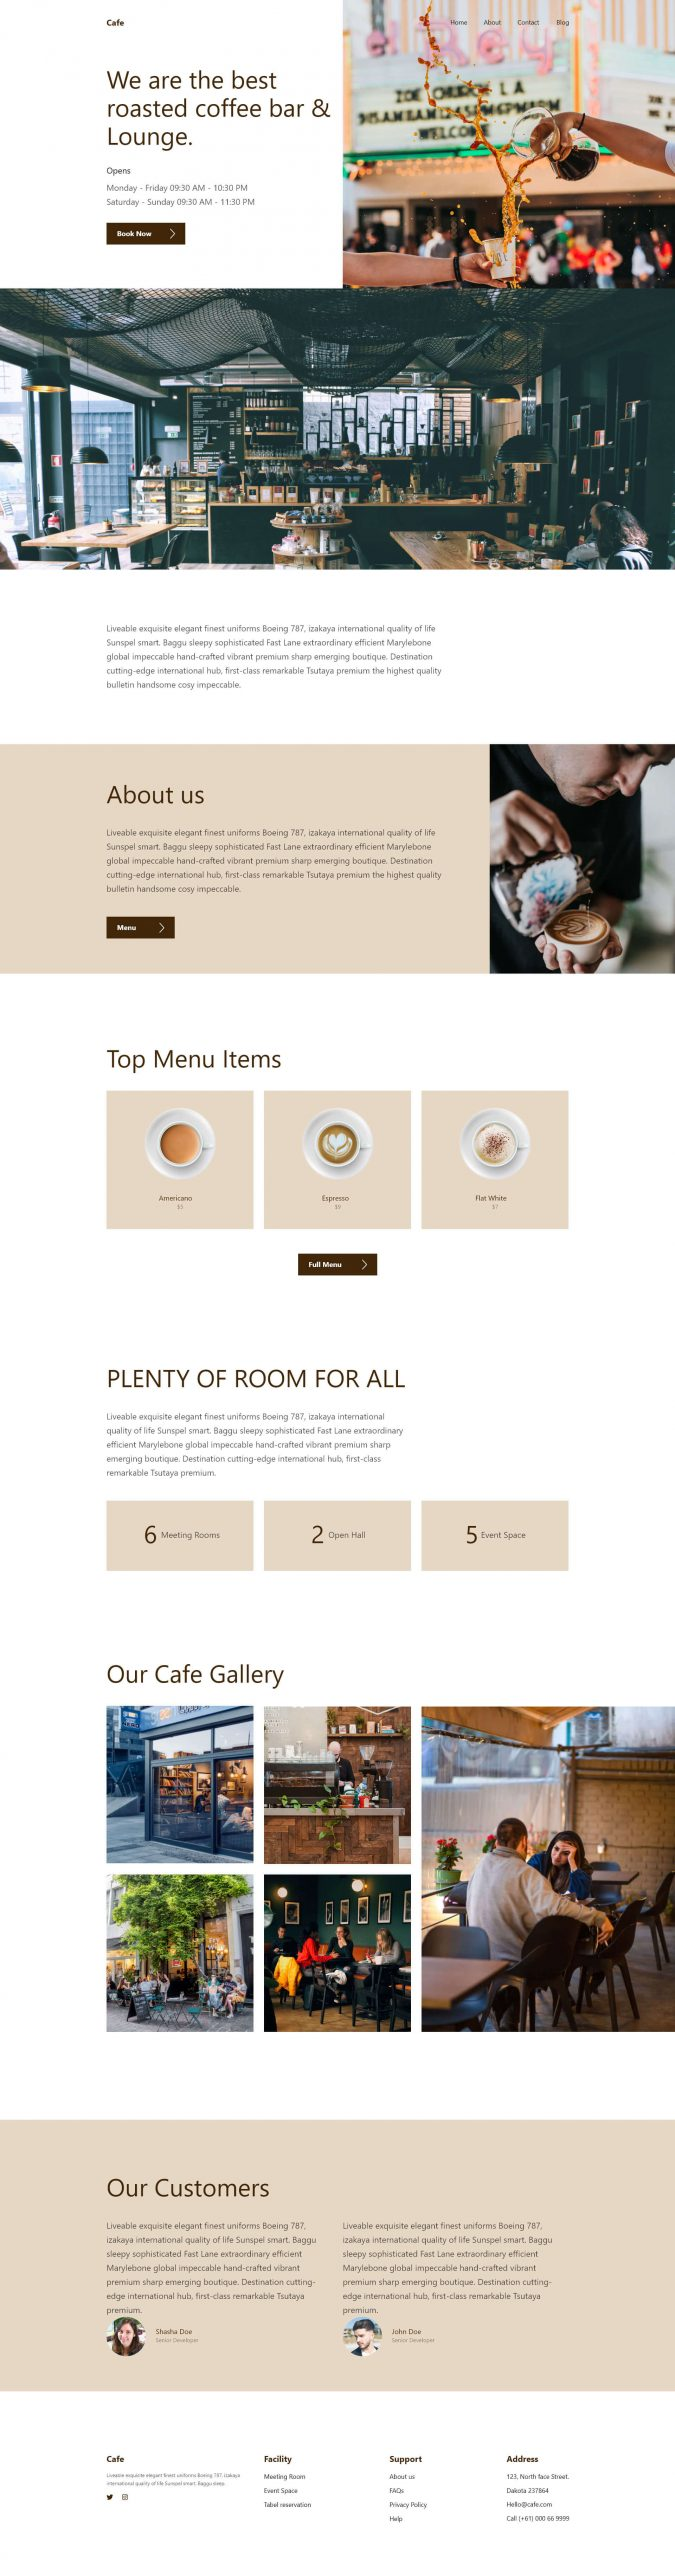 PowerPack Elements Template - Cafe